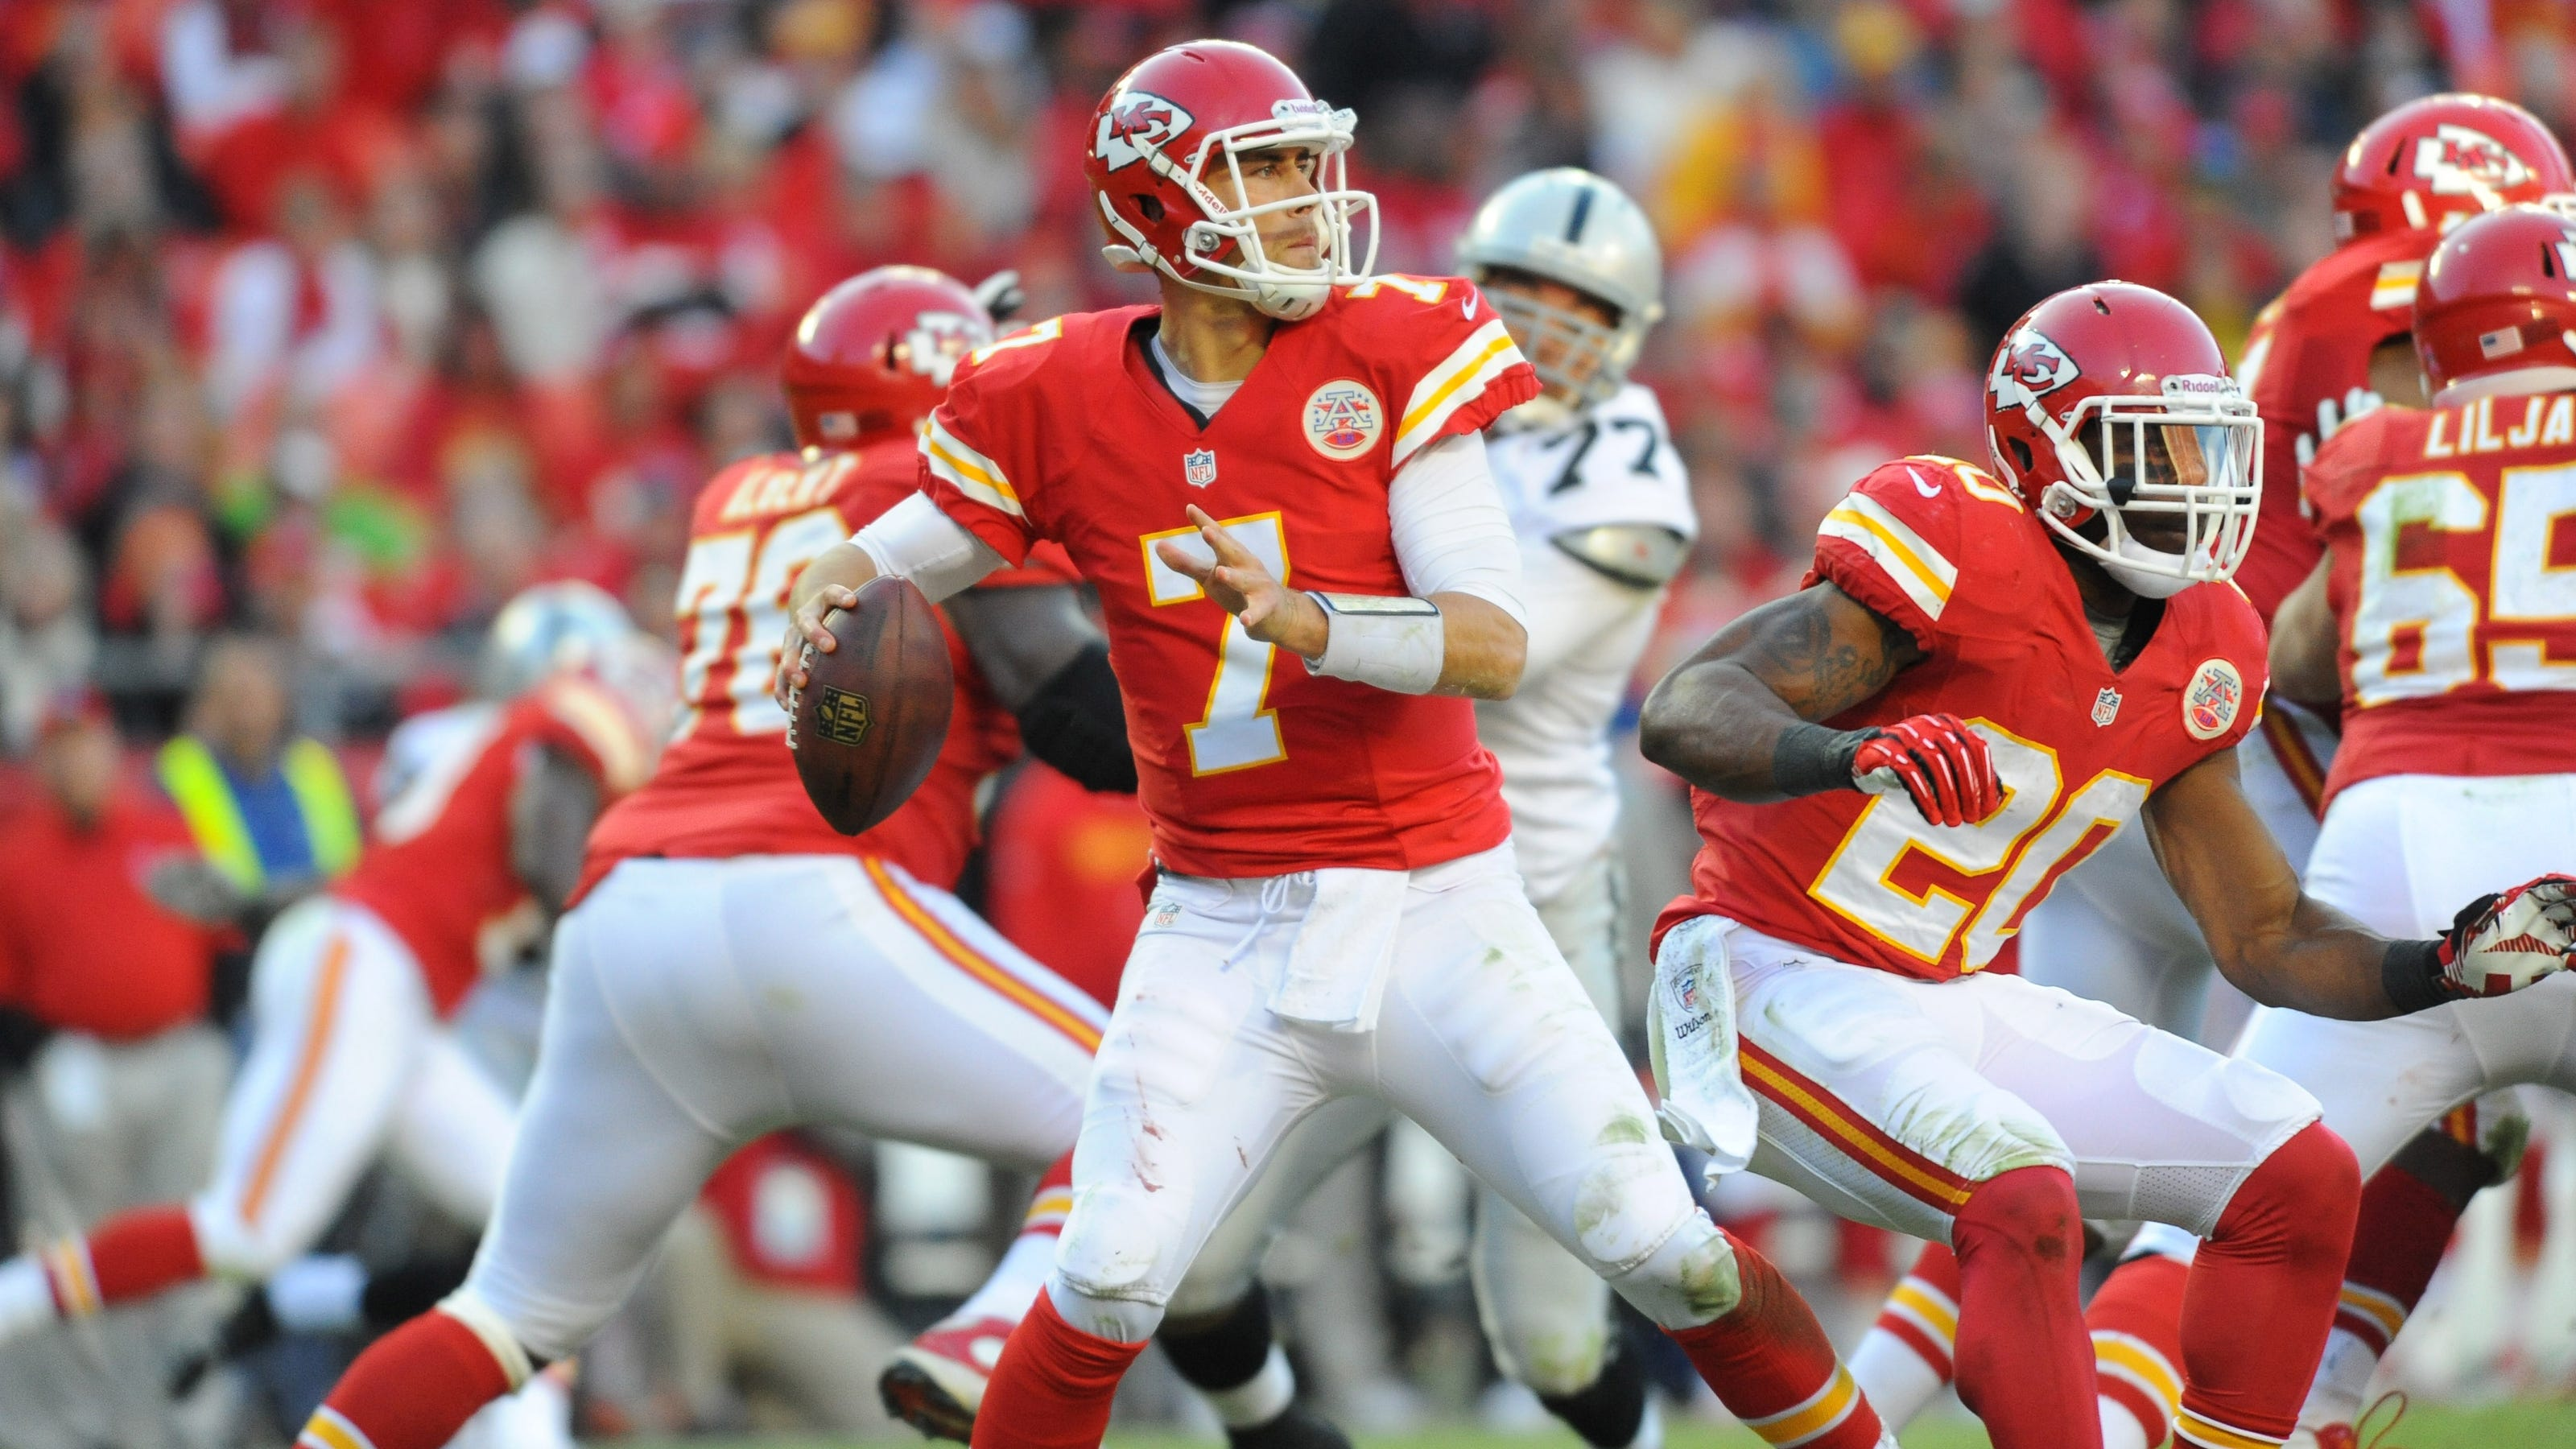 Matt Cassel To Start At Qb For Chiefs Vs Chargers